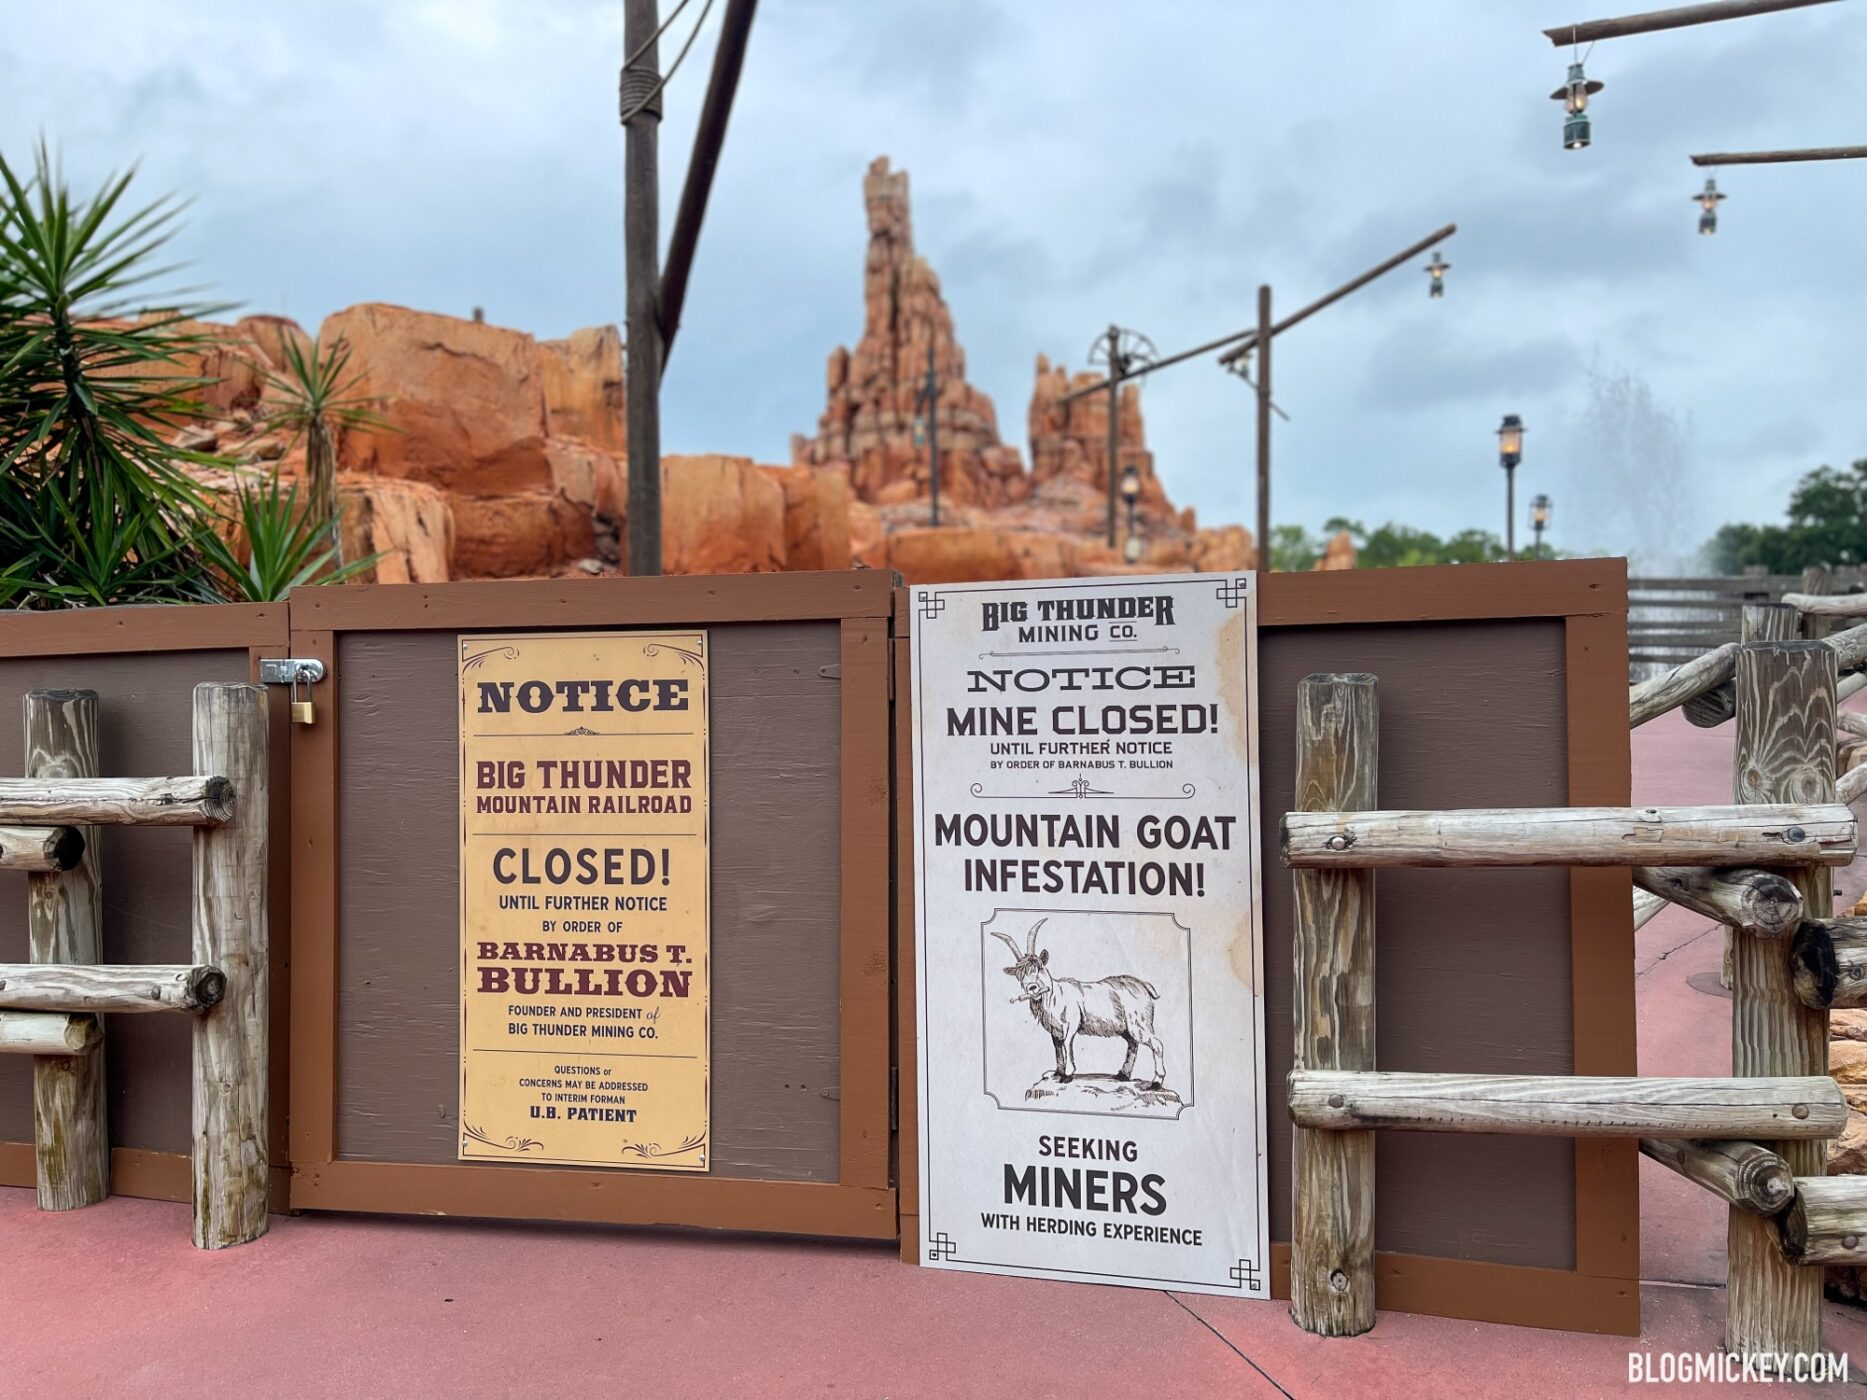 There are hundreds of mountains on land and under the sea. Big Thunder Mountain Railroad Now Closed For Refurbishment